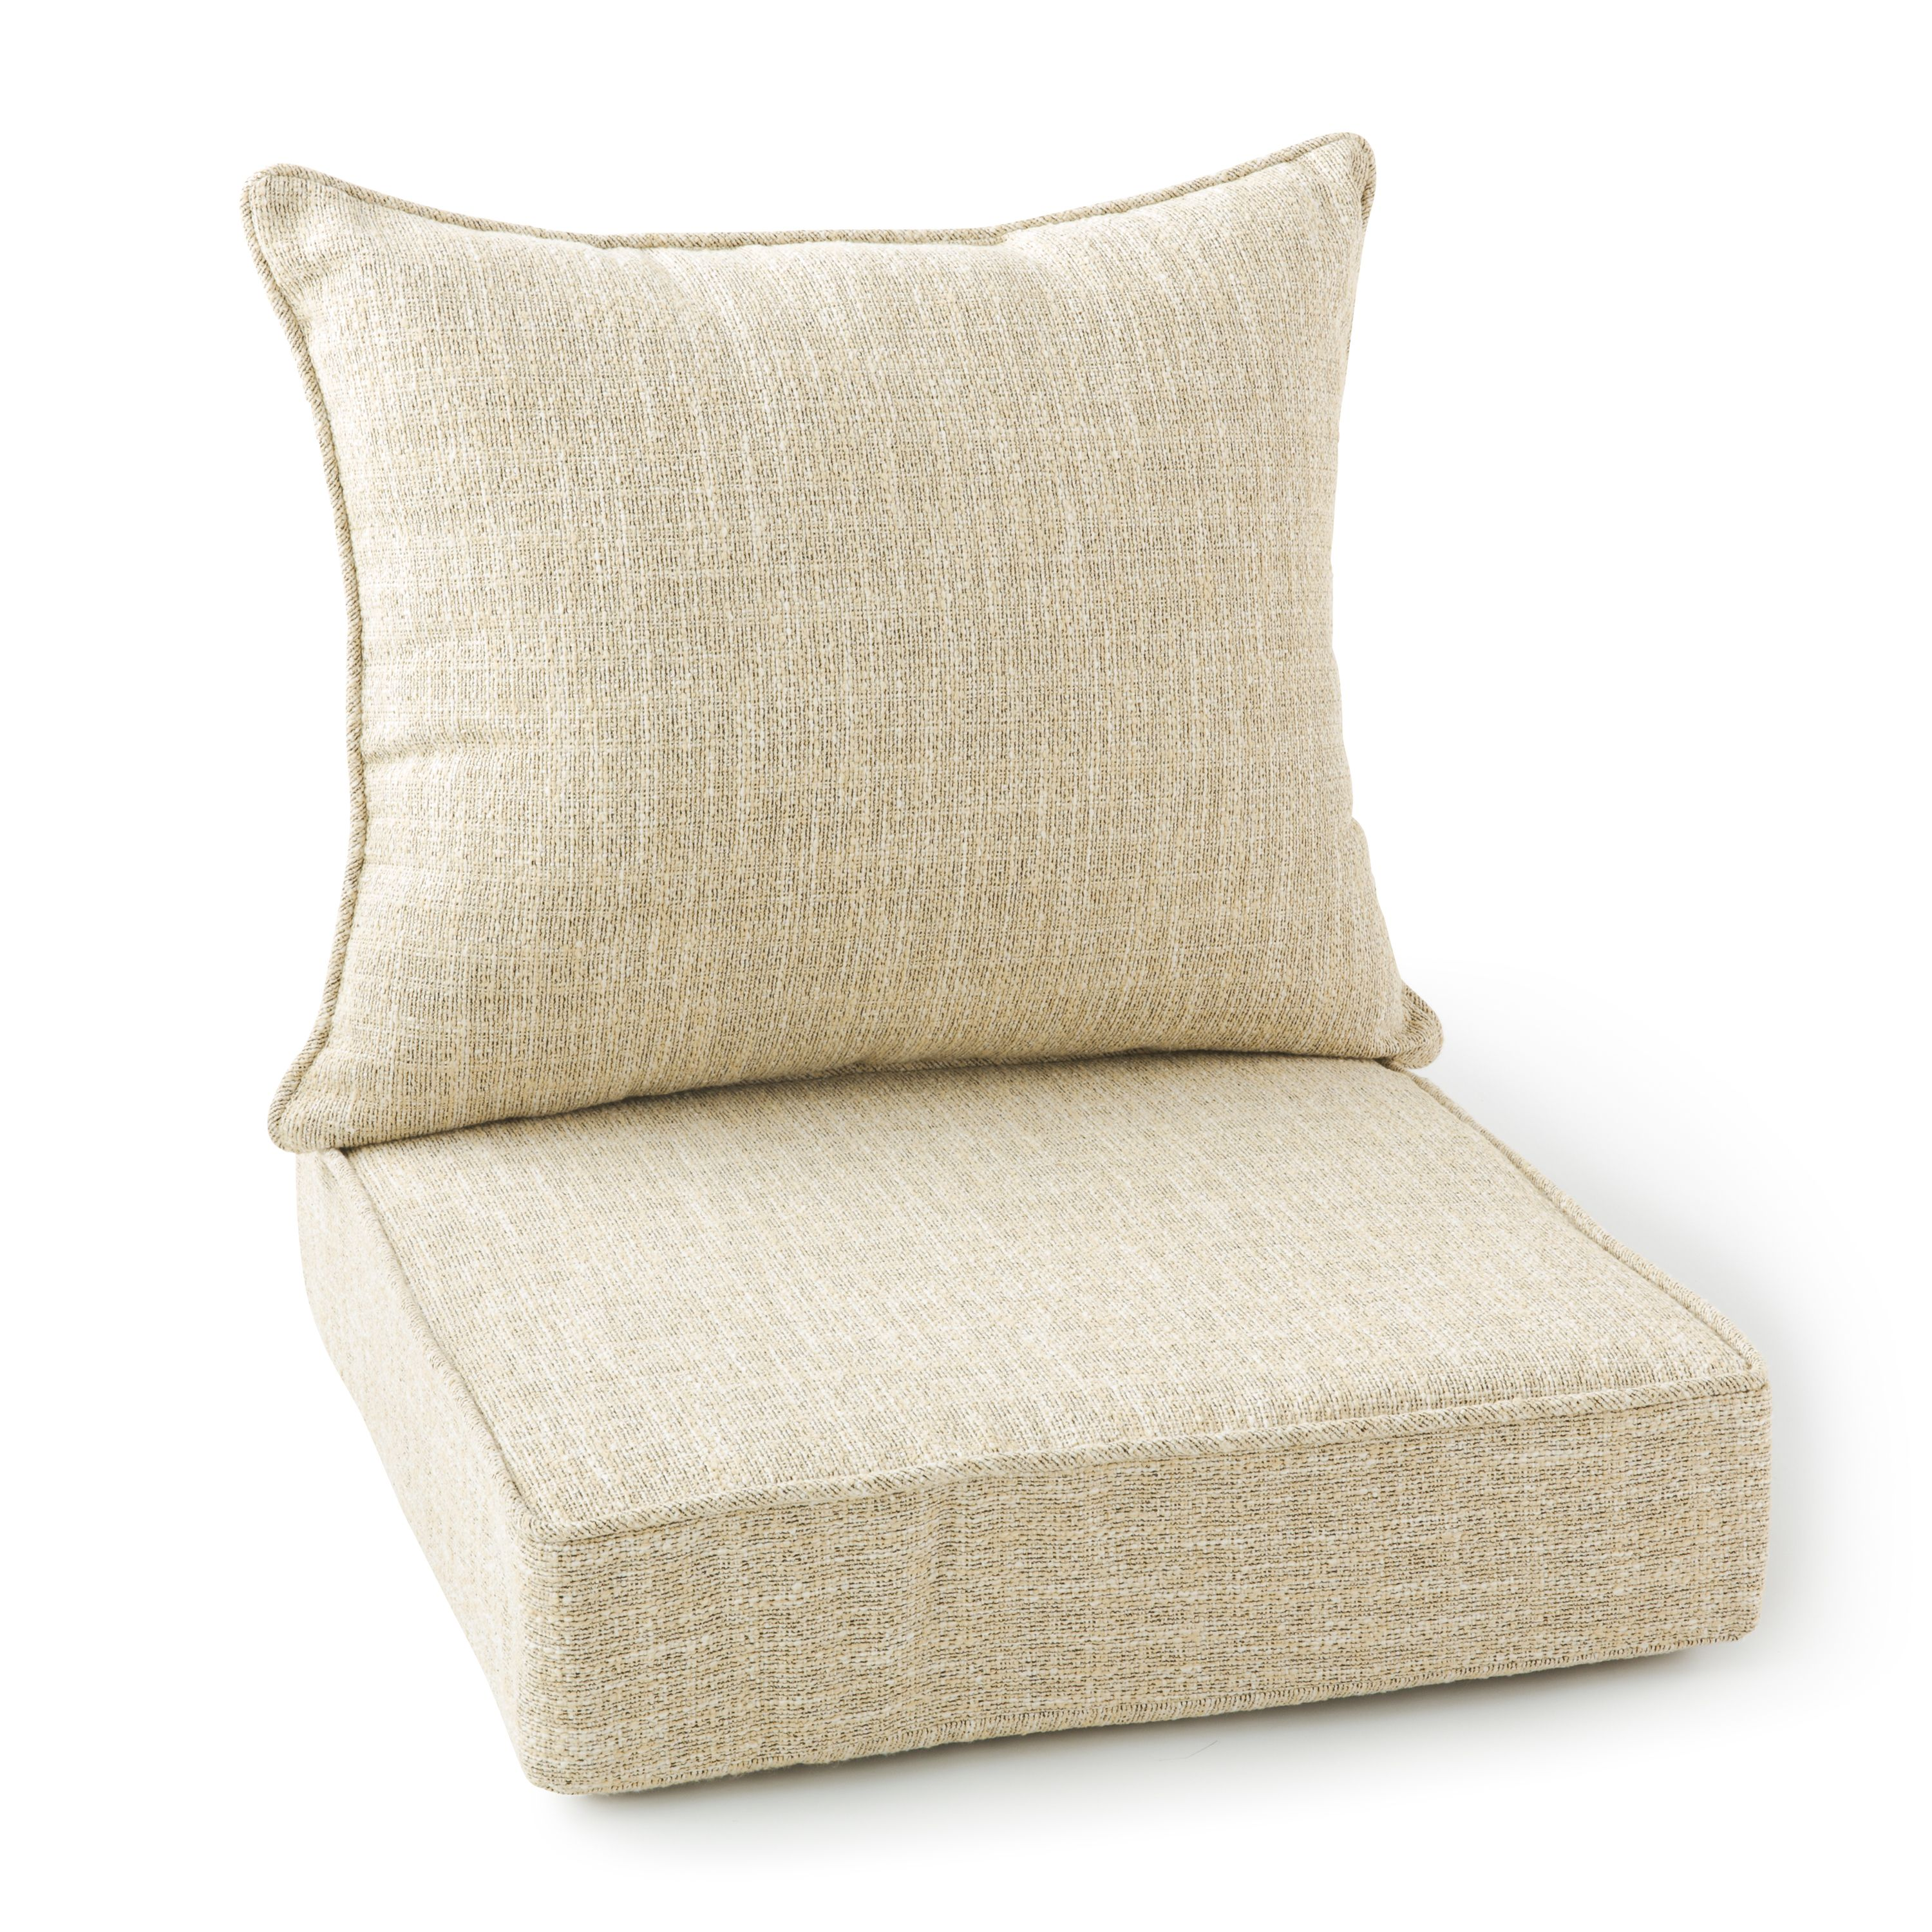 better homes gardens 2 piece outdoor lounge chair cushion set in jute